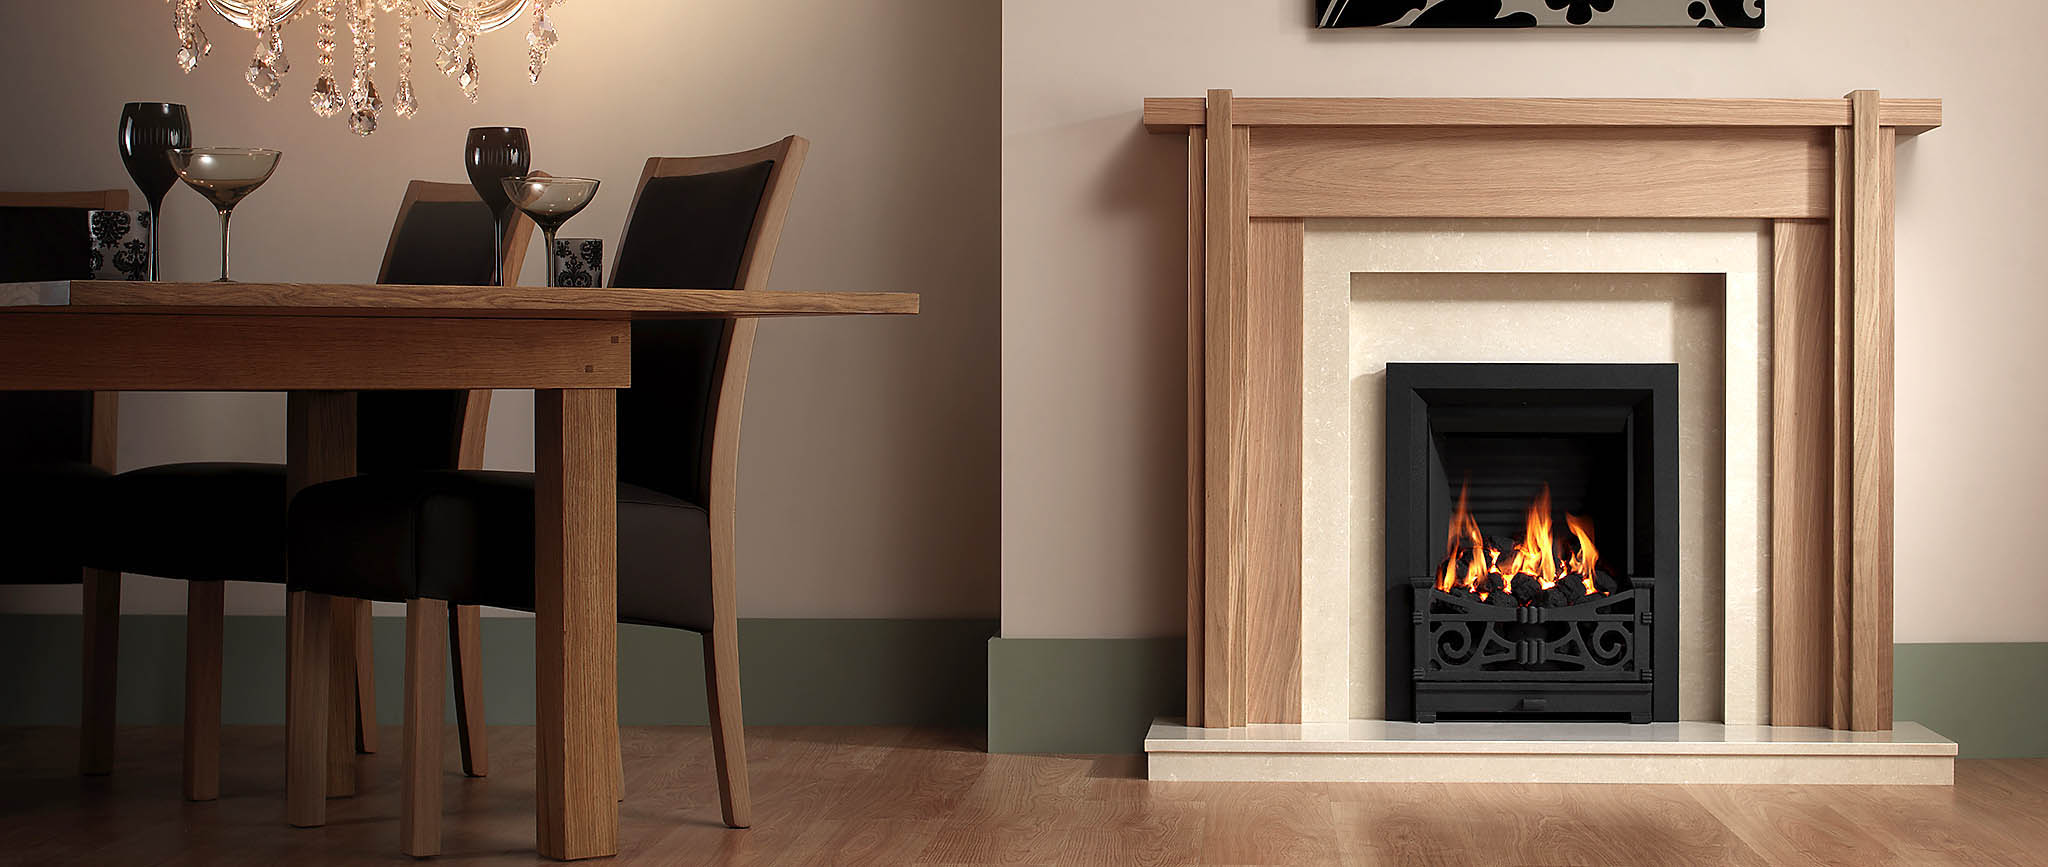 Tzakotexniki Ltd Fireplaces Stoves And Accessories In Cyprus